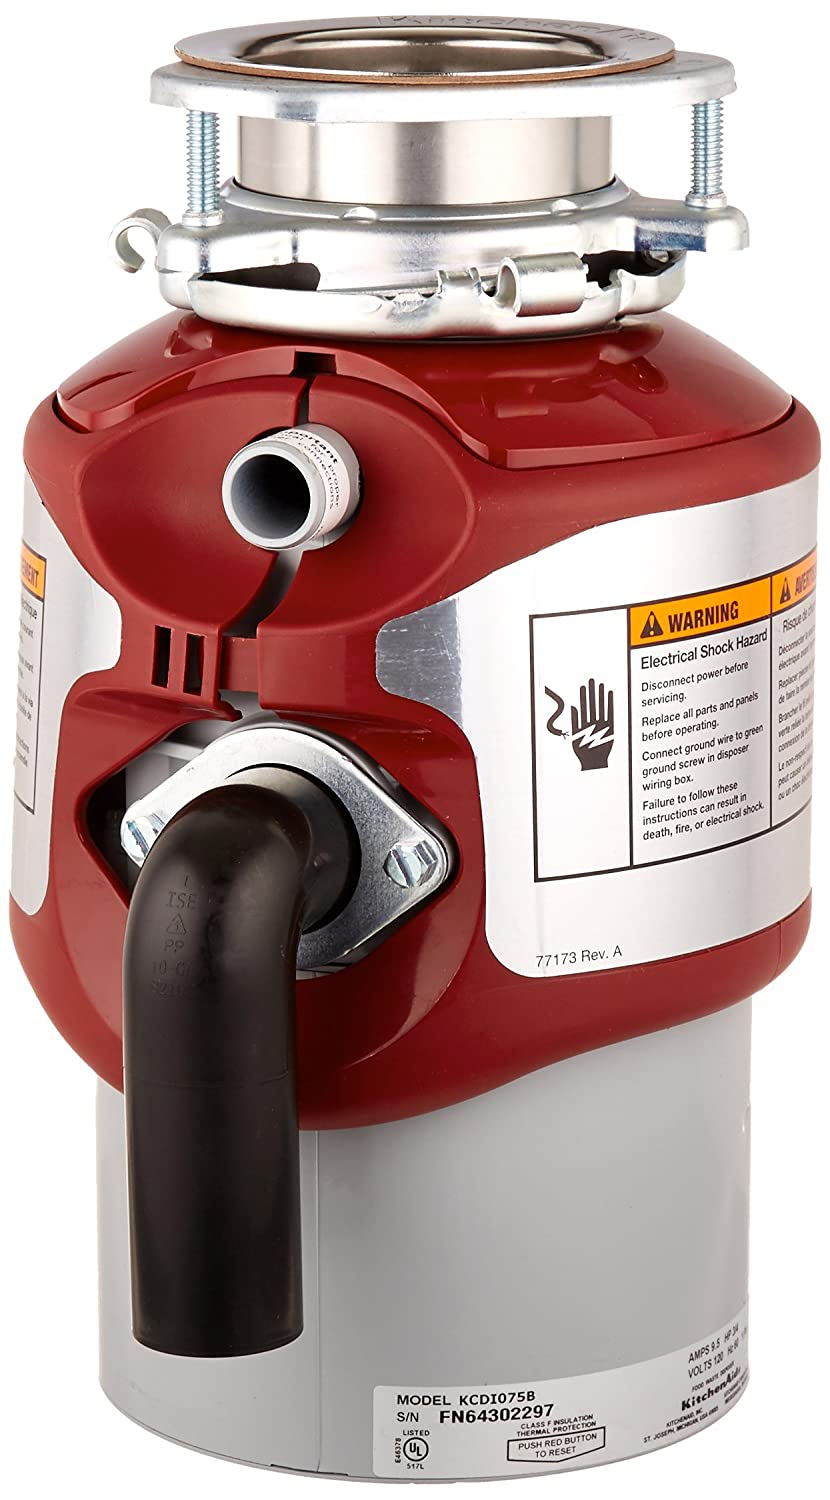 KitchenAid KCDI075B 3 4 hp Continuous Feed Food Waste Disposer, Red